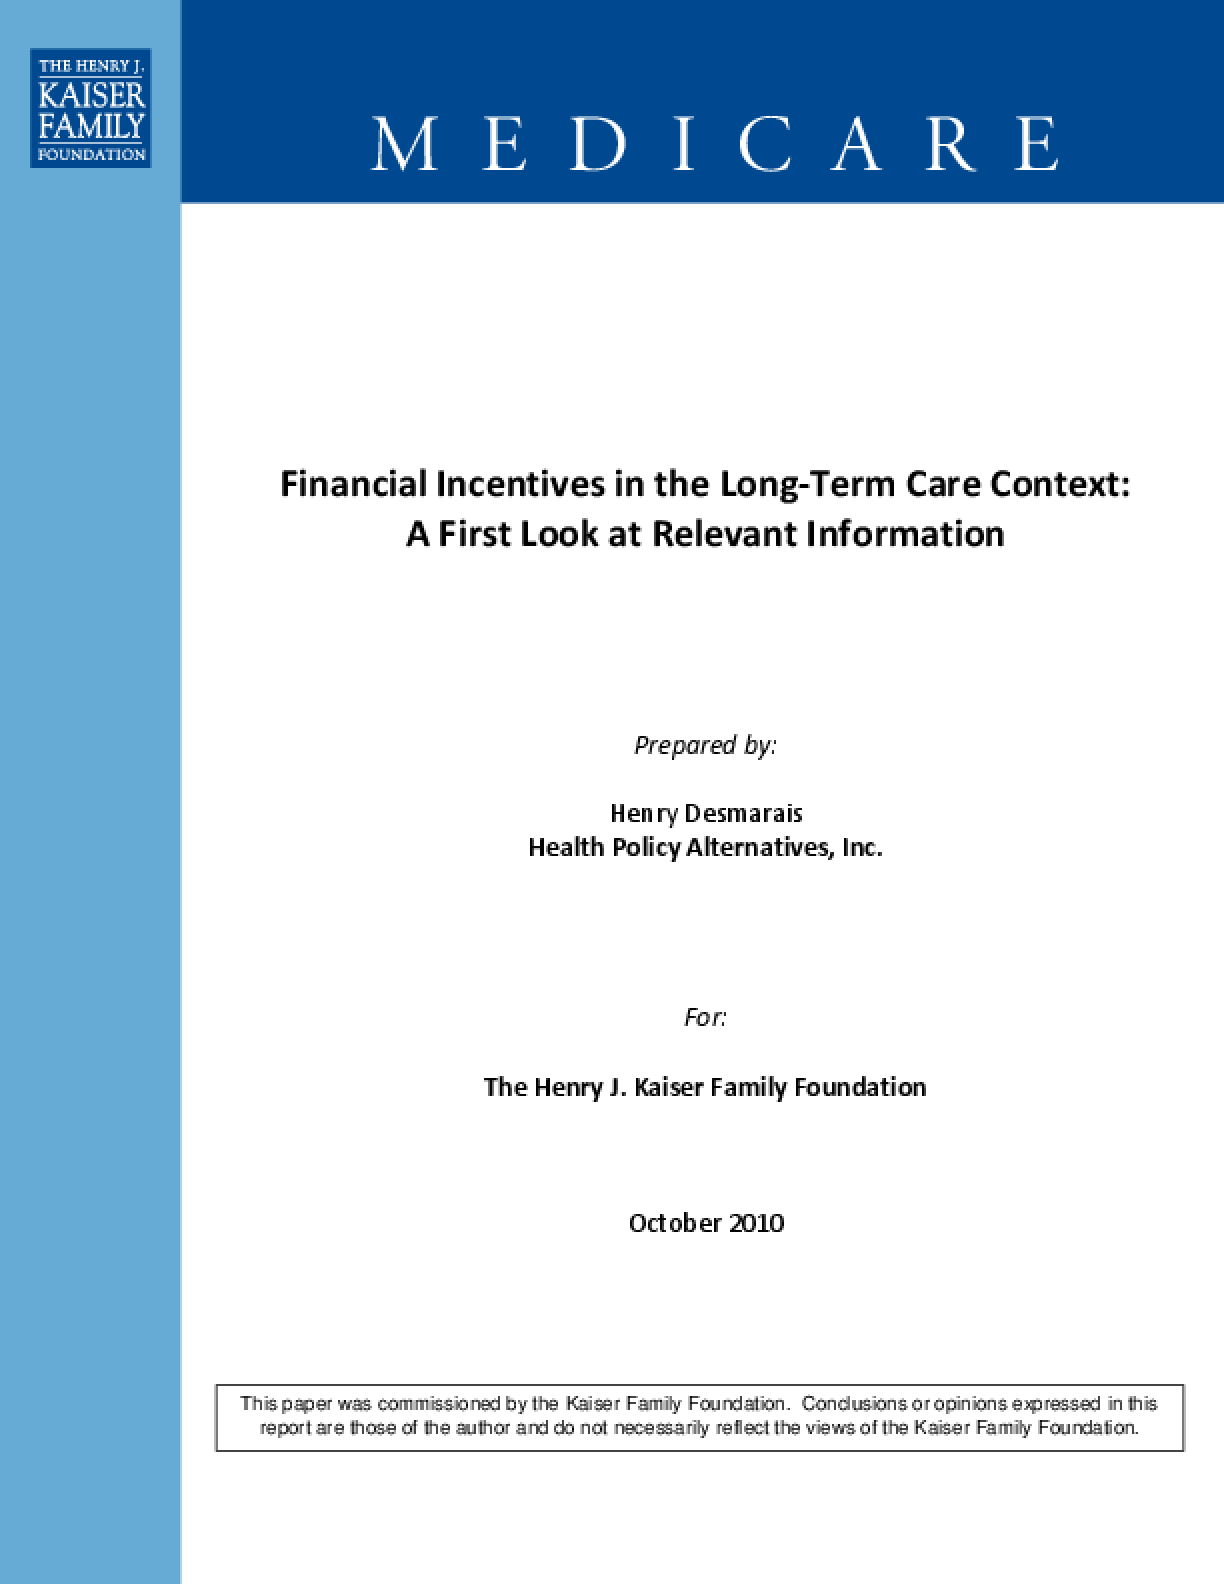 Financial Incentives in the Long-Term Care Context: A First Look at Relevant Information